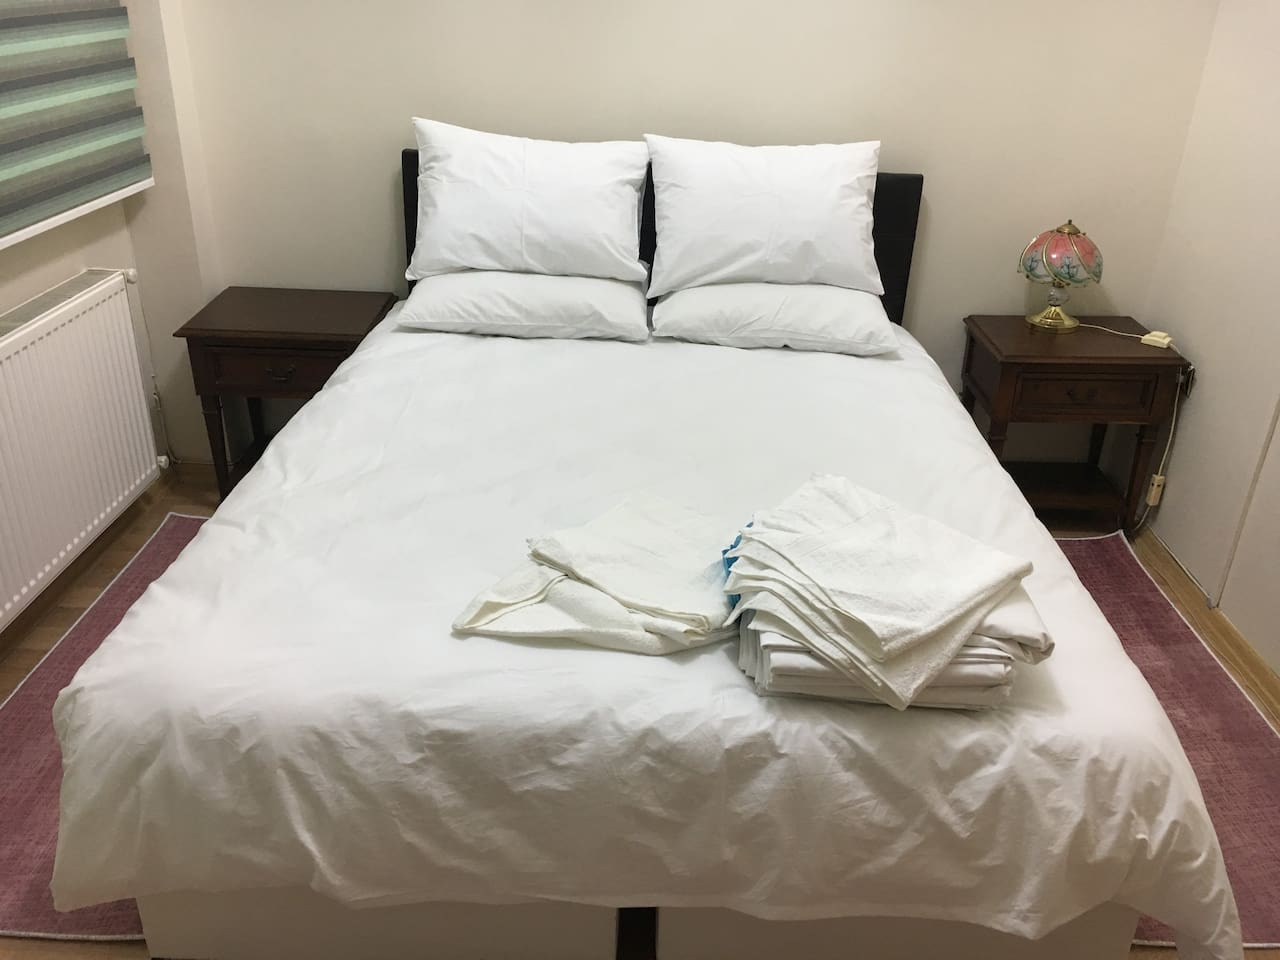 Spare bedding and clean towels available.